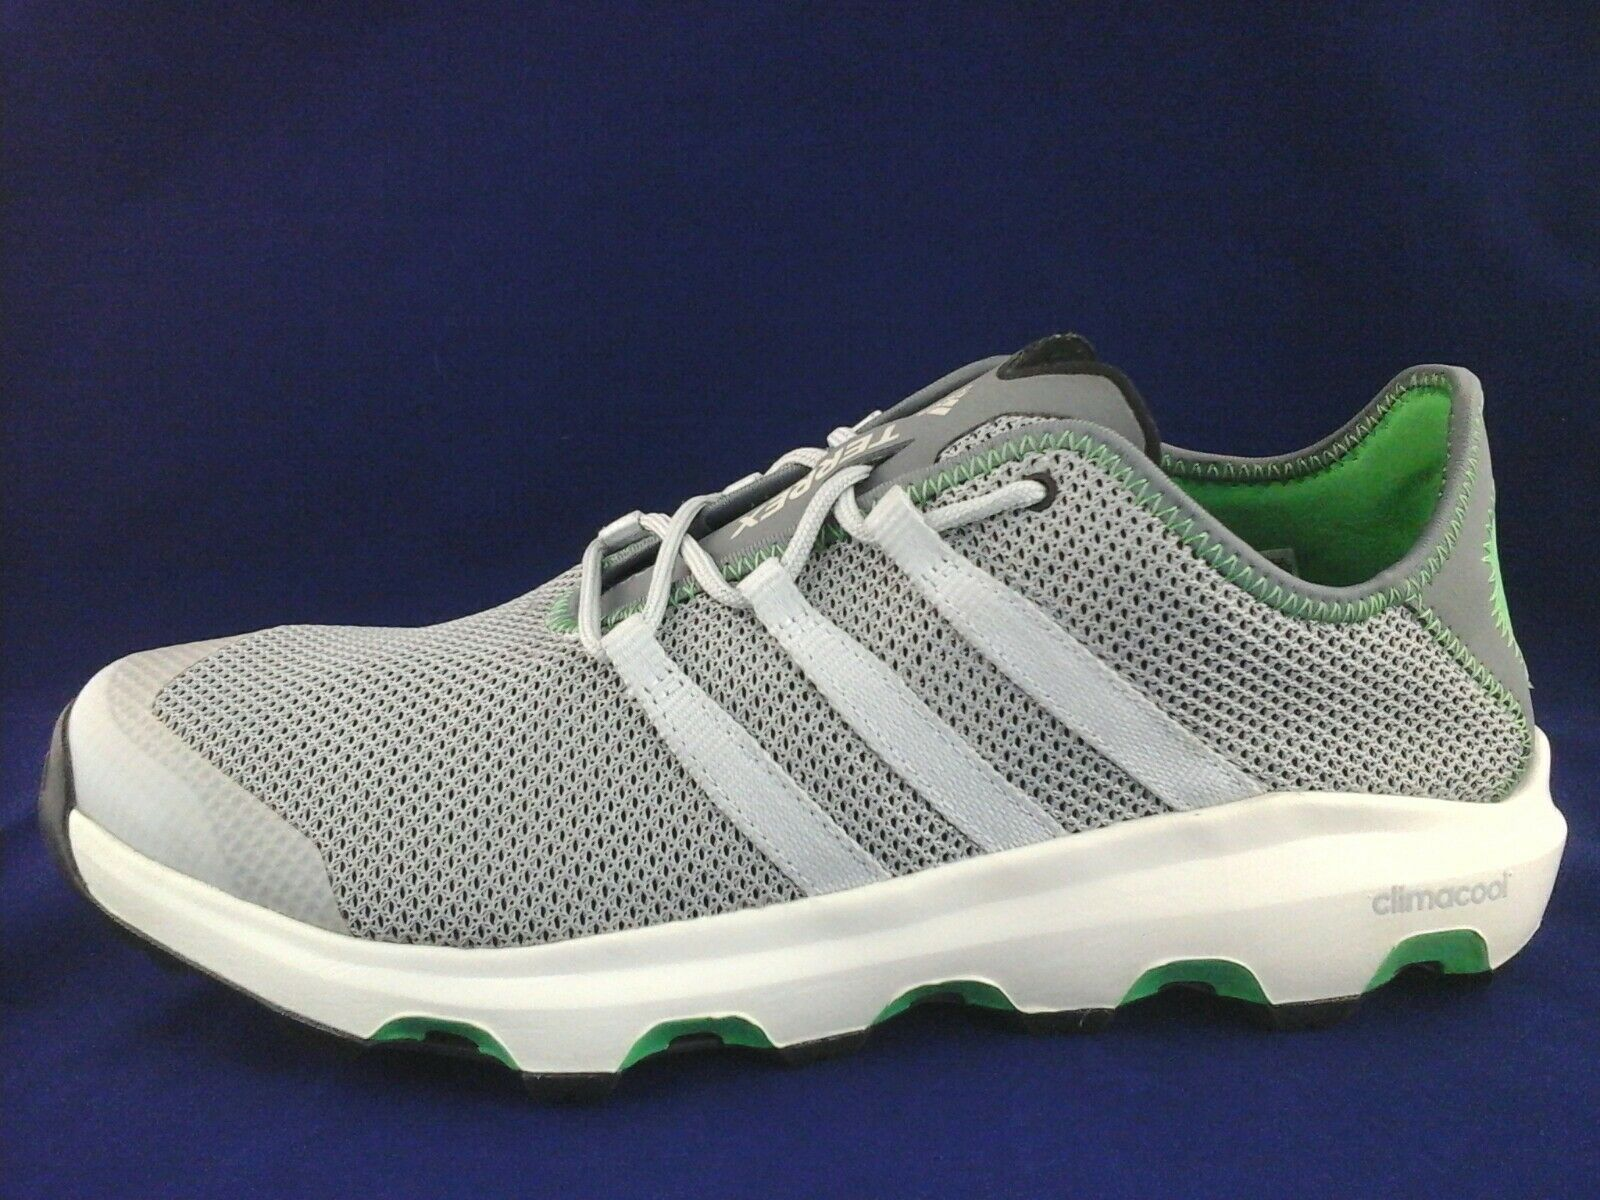 Adidas Outdoor Terrex Climacool Climacool Climacool Voyager BB1894 Mens schuhe grau US 11 & 12 New a158c5